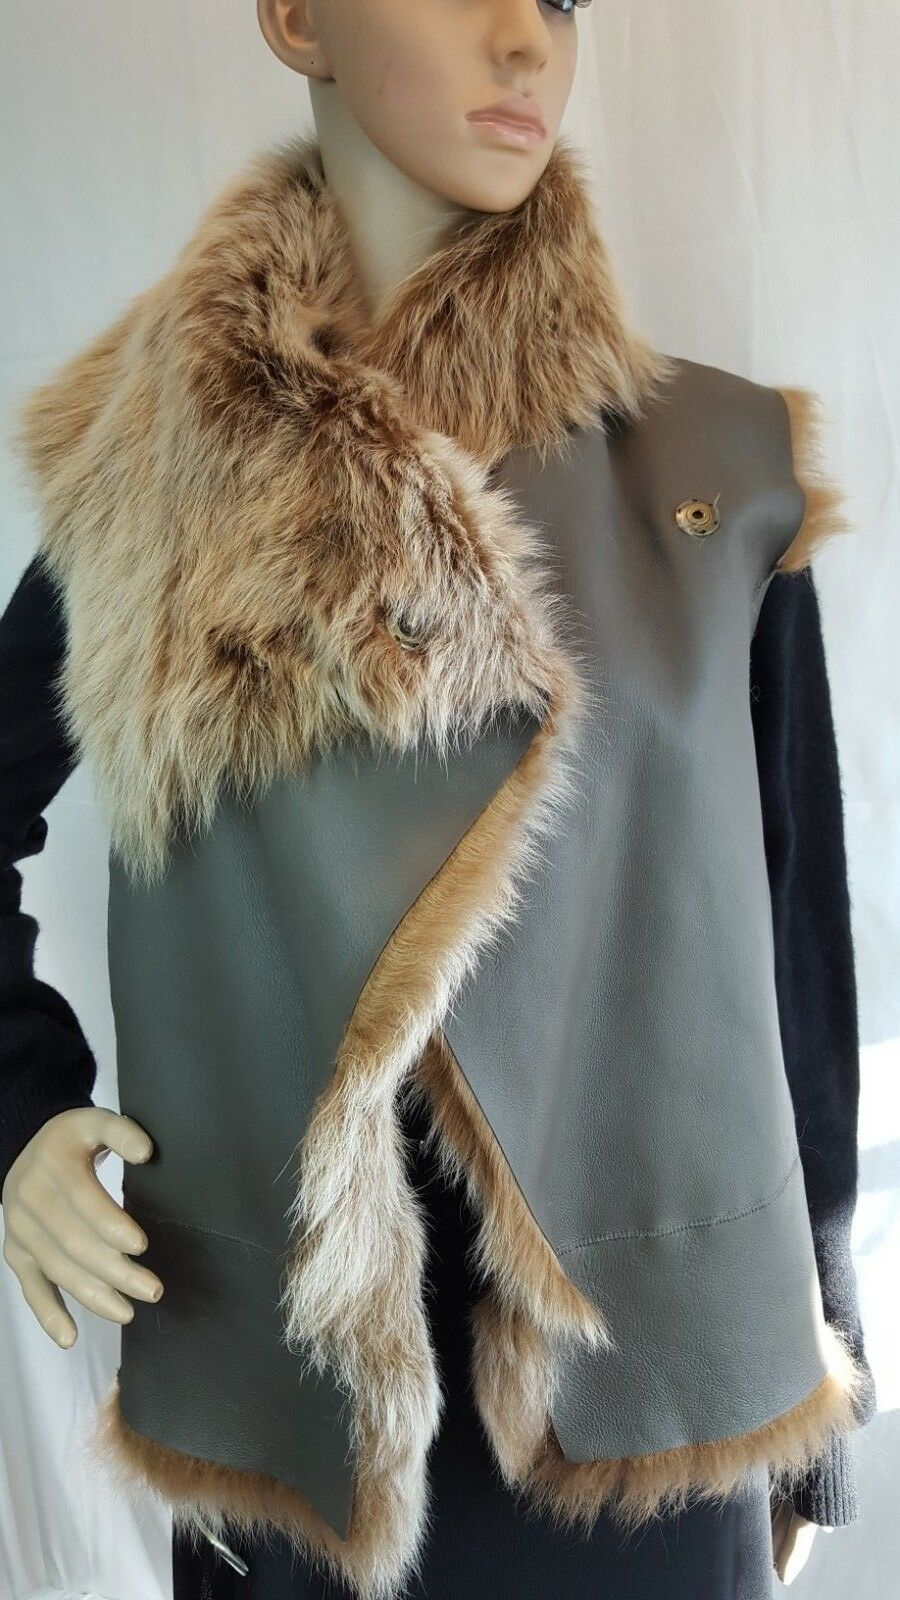 NWT 1695 VERONICA BEARD Natural Shearling Shearling Shearling Sleeveless Leather Vest Olive Green S 1b5616